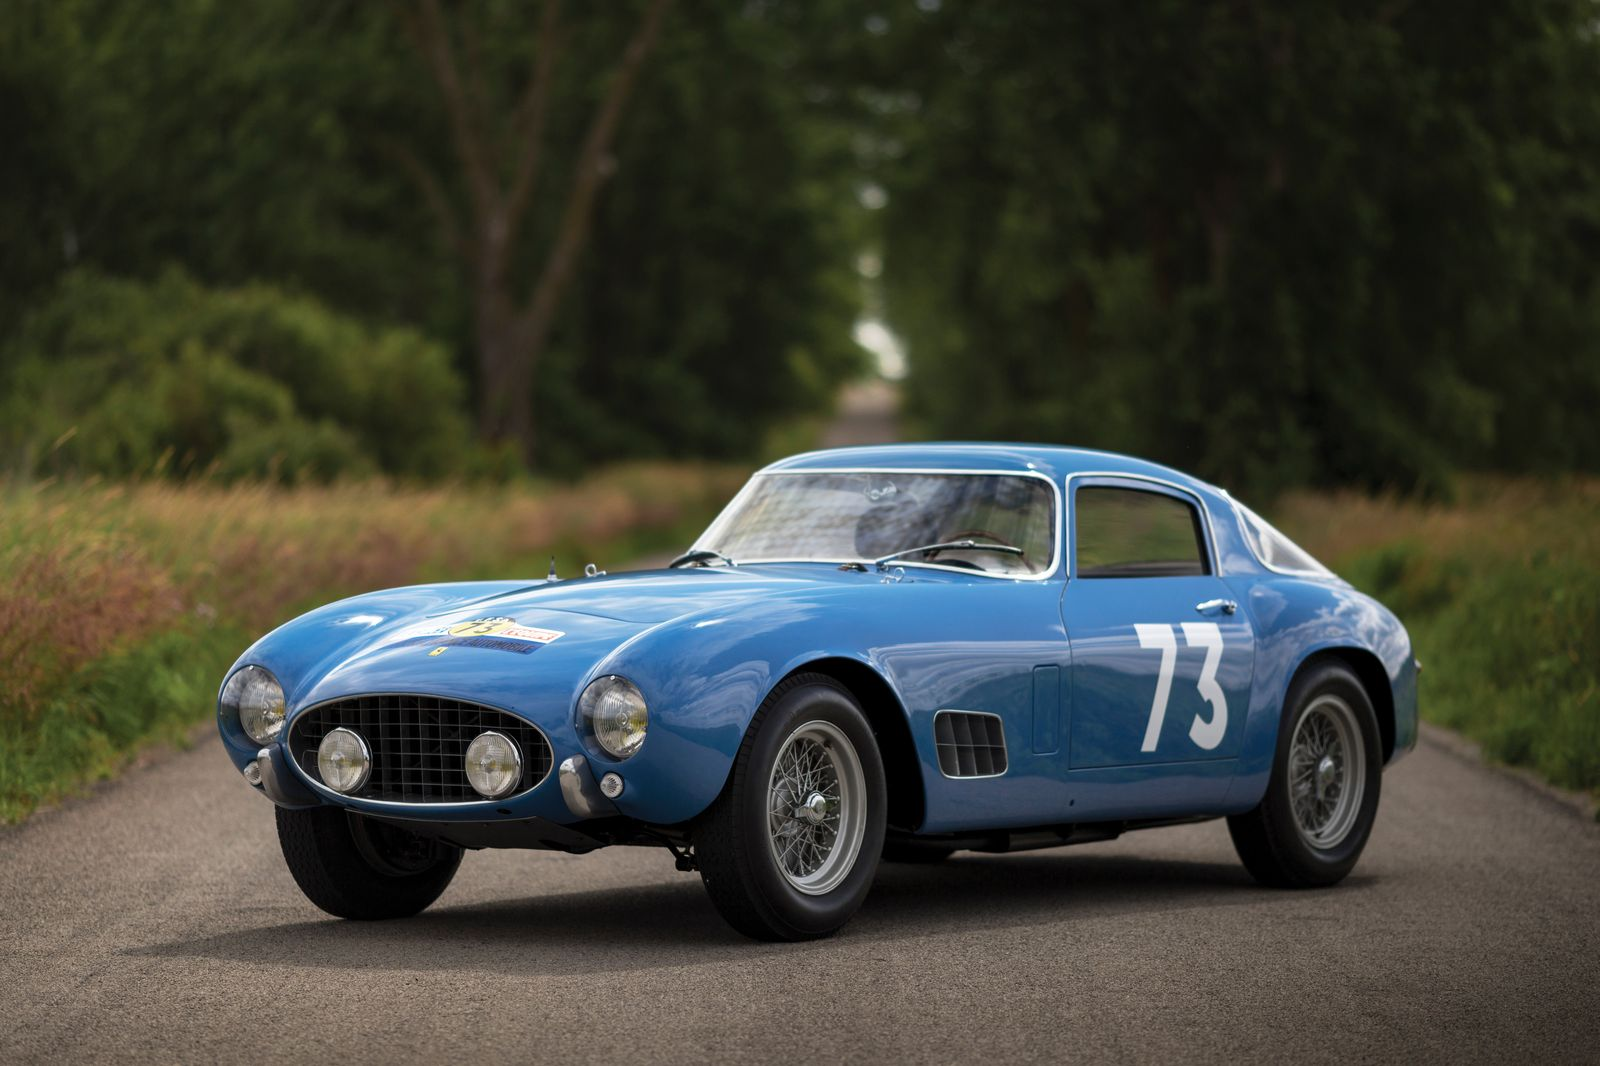 1956 Ferrari 250 GT Berlinetta 'Tour de France'